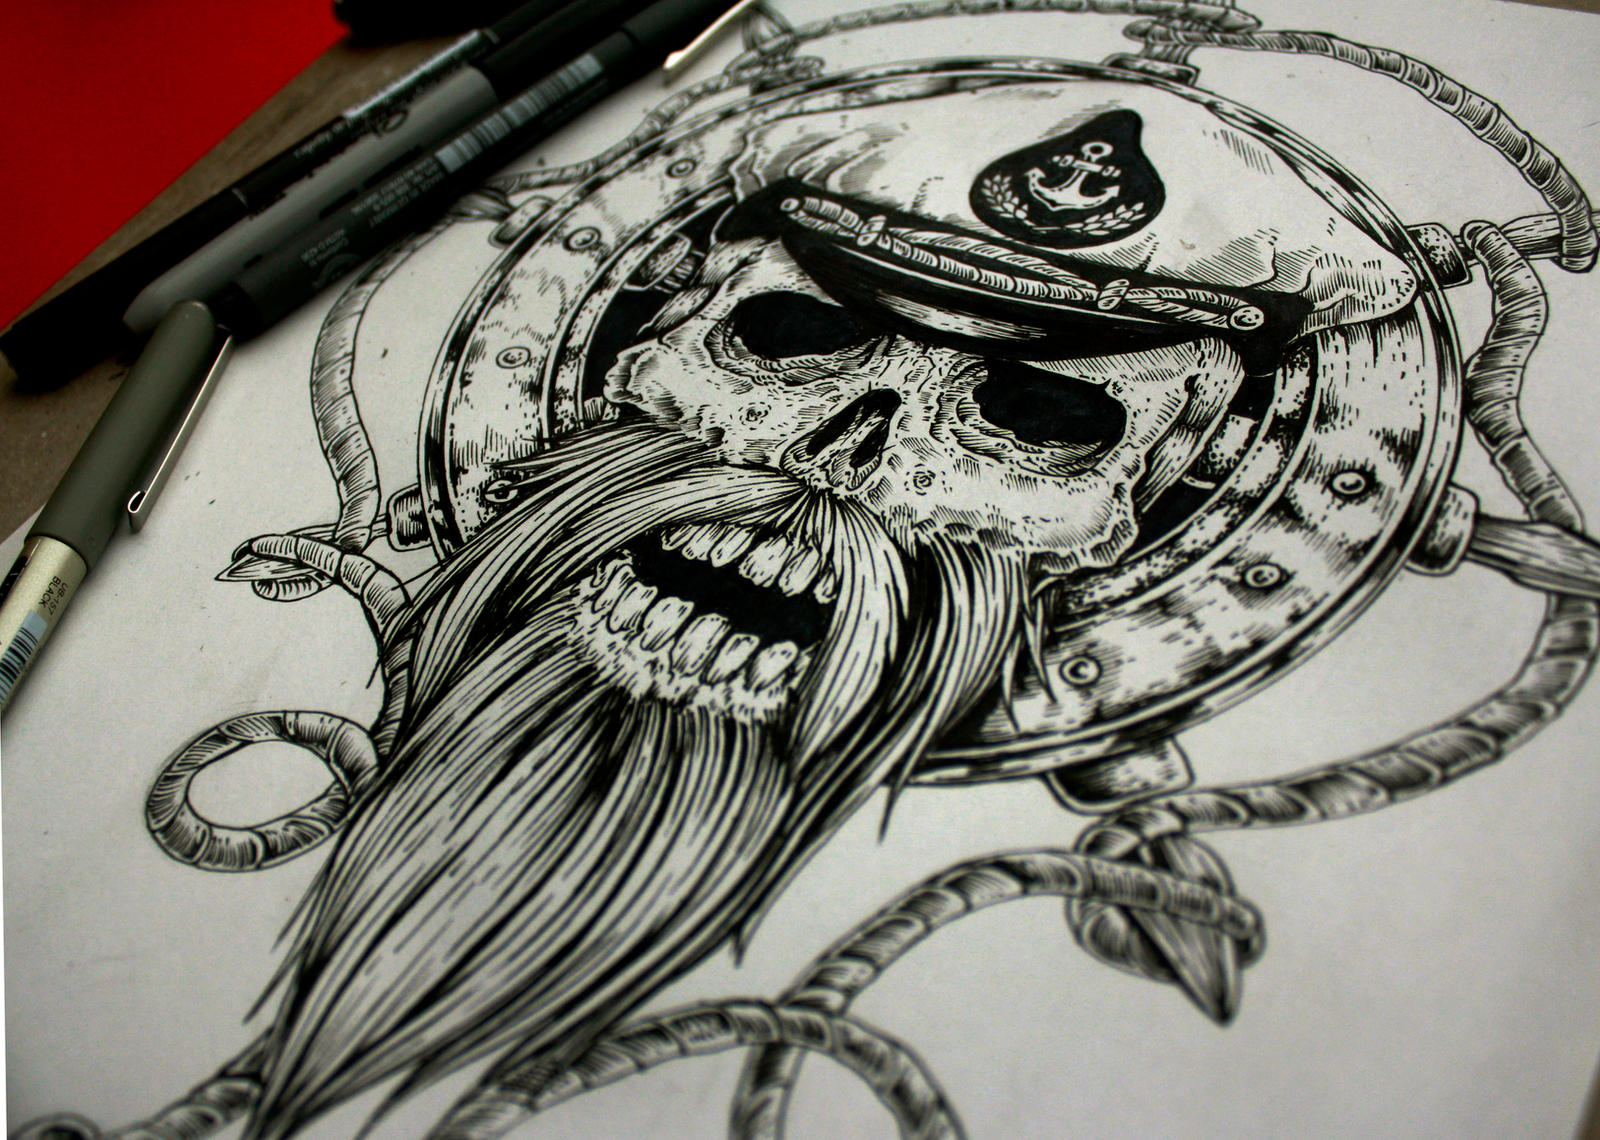 byra666 943 82 Sailor Tattoo Desing Commission   SOLD    by EG TheFreak. skulltattoo   Explore skulltattoo on DeviantArt